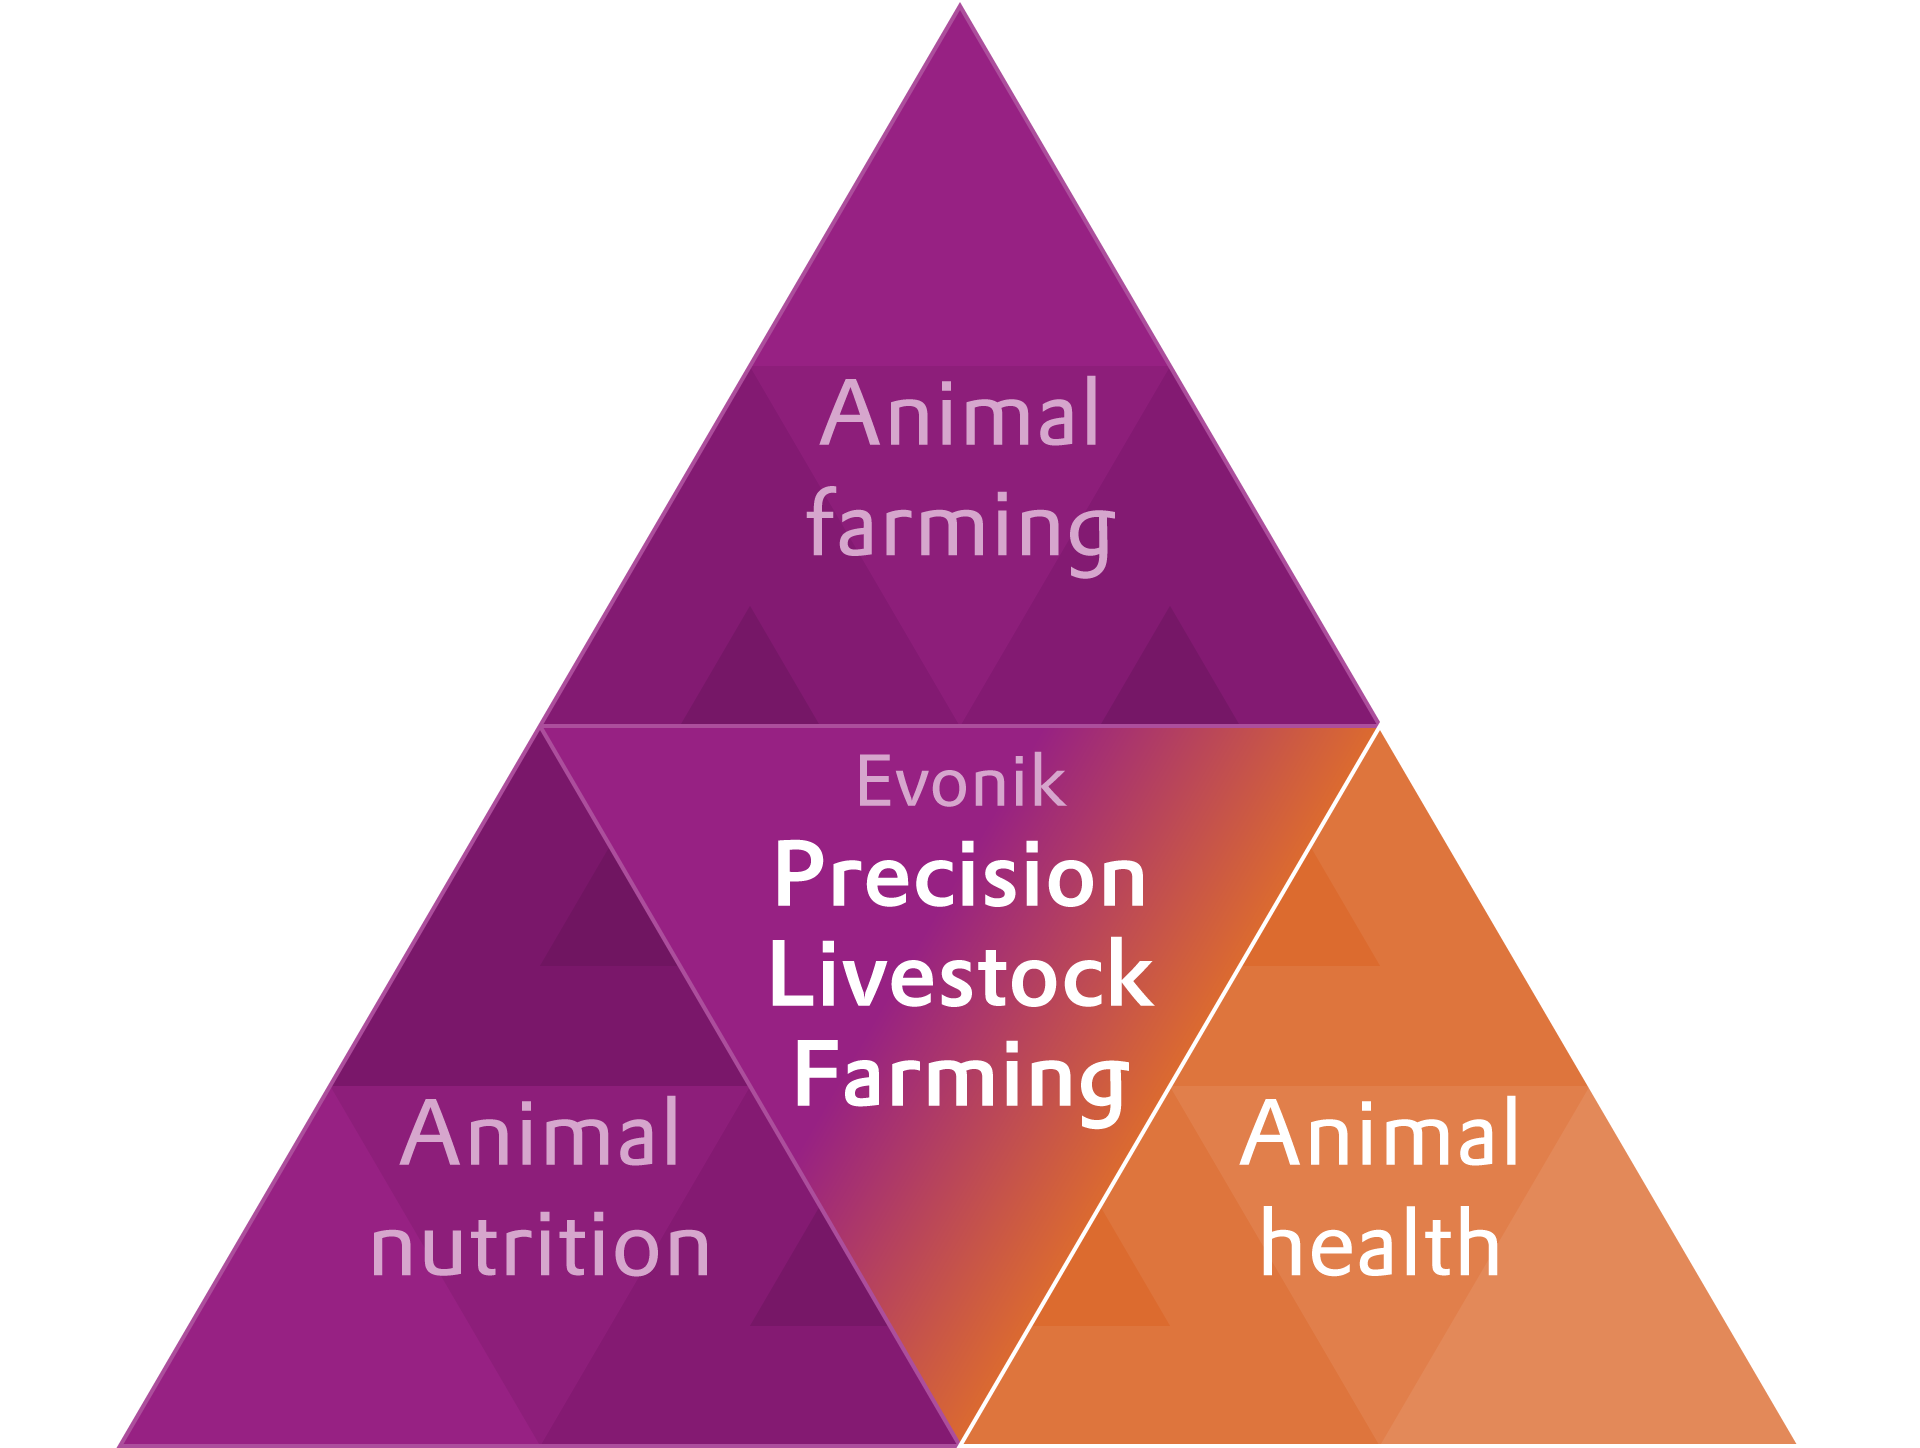 Evonik PLF helps improve animal health and growth